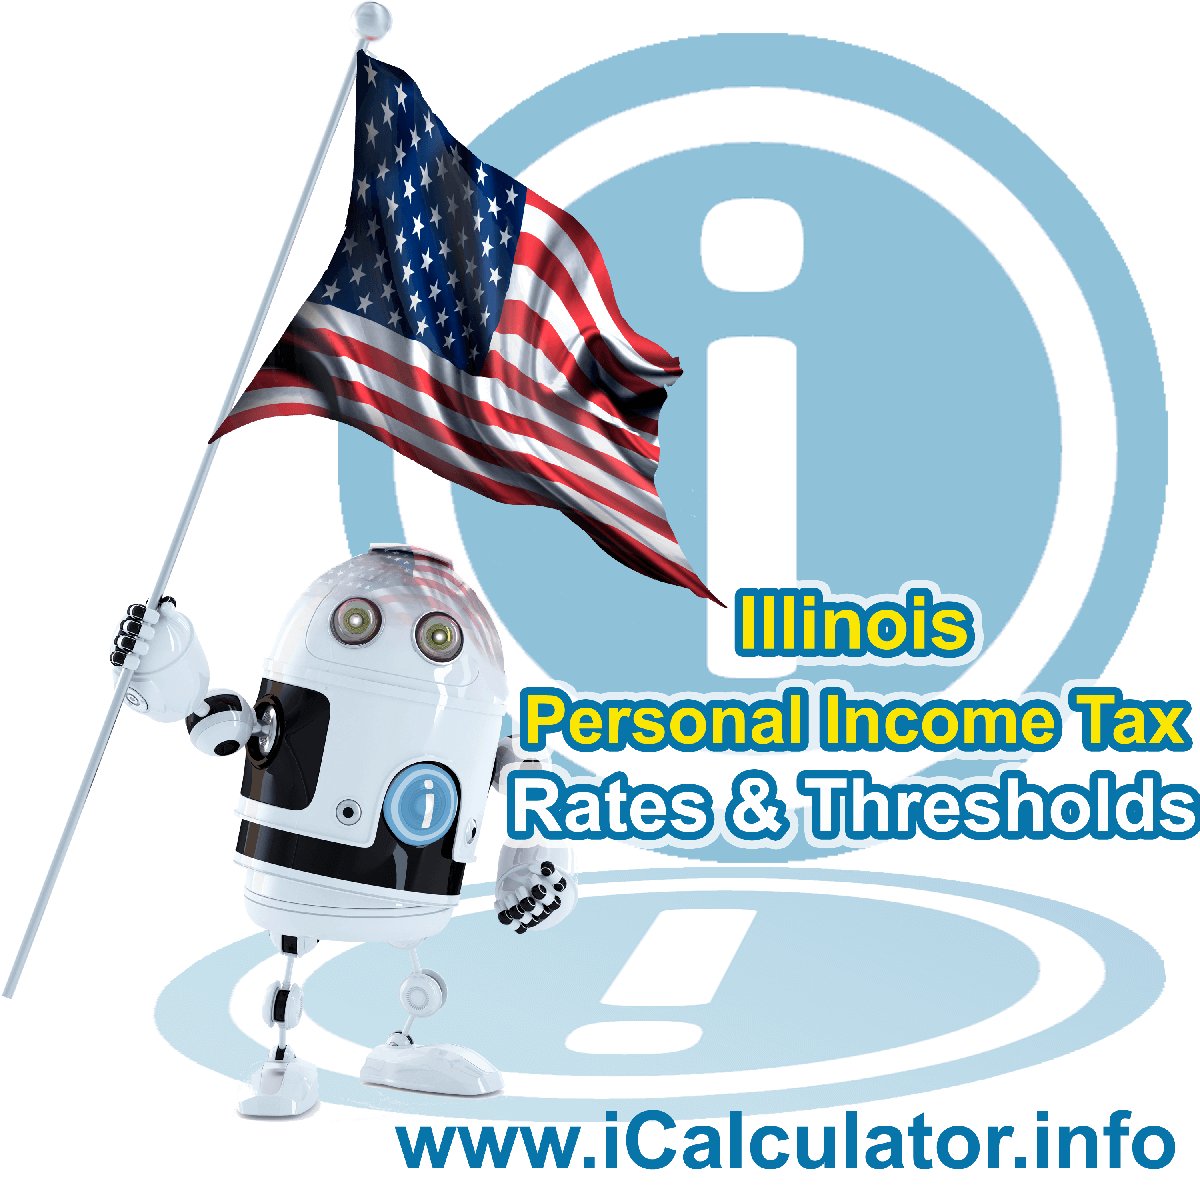 Illinois State Tax Tables 2013. This image displays details of the Illinois State Tax Tables for the 2013 tax return year which is provided in support of the 2013 US Tax Calculator